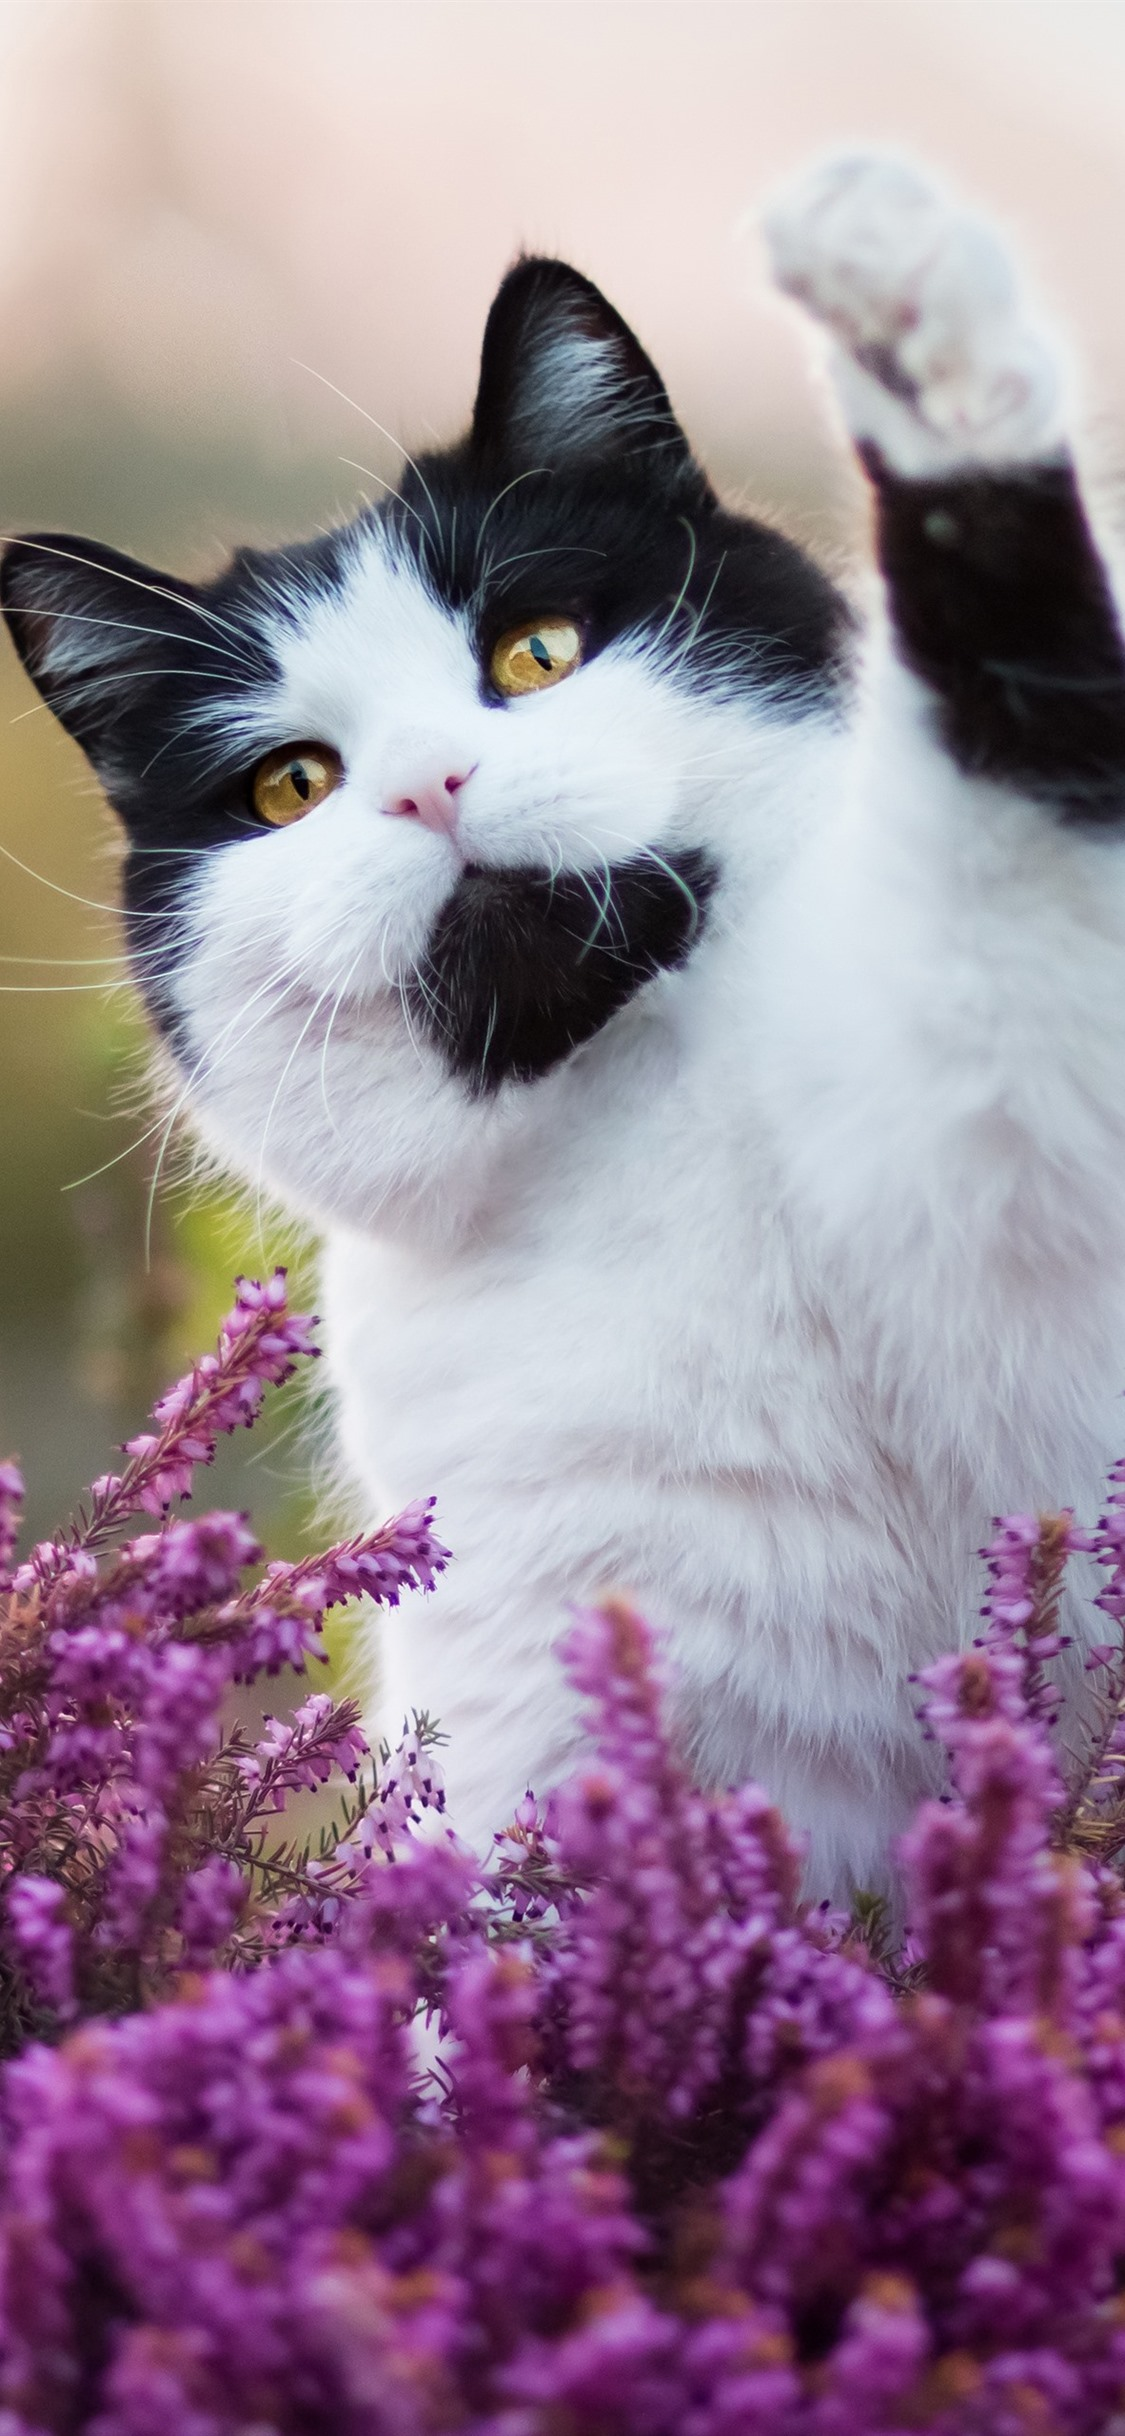 Cute Cat Pink Flowers Hello Funny Animal 1125x2436 Iphone